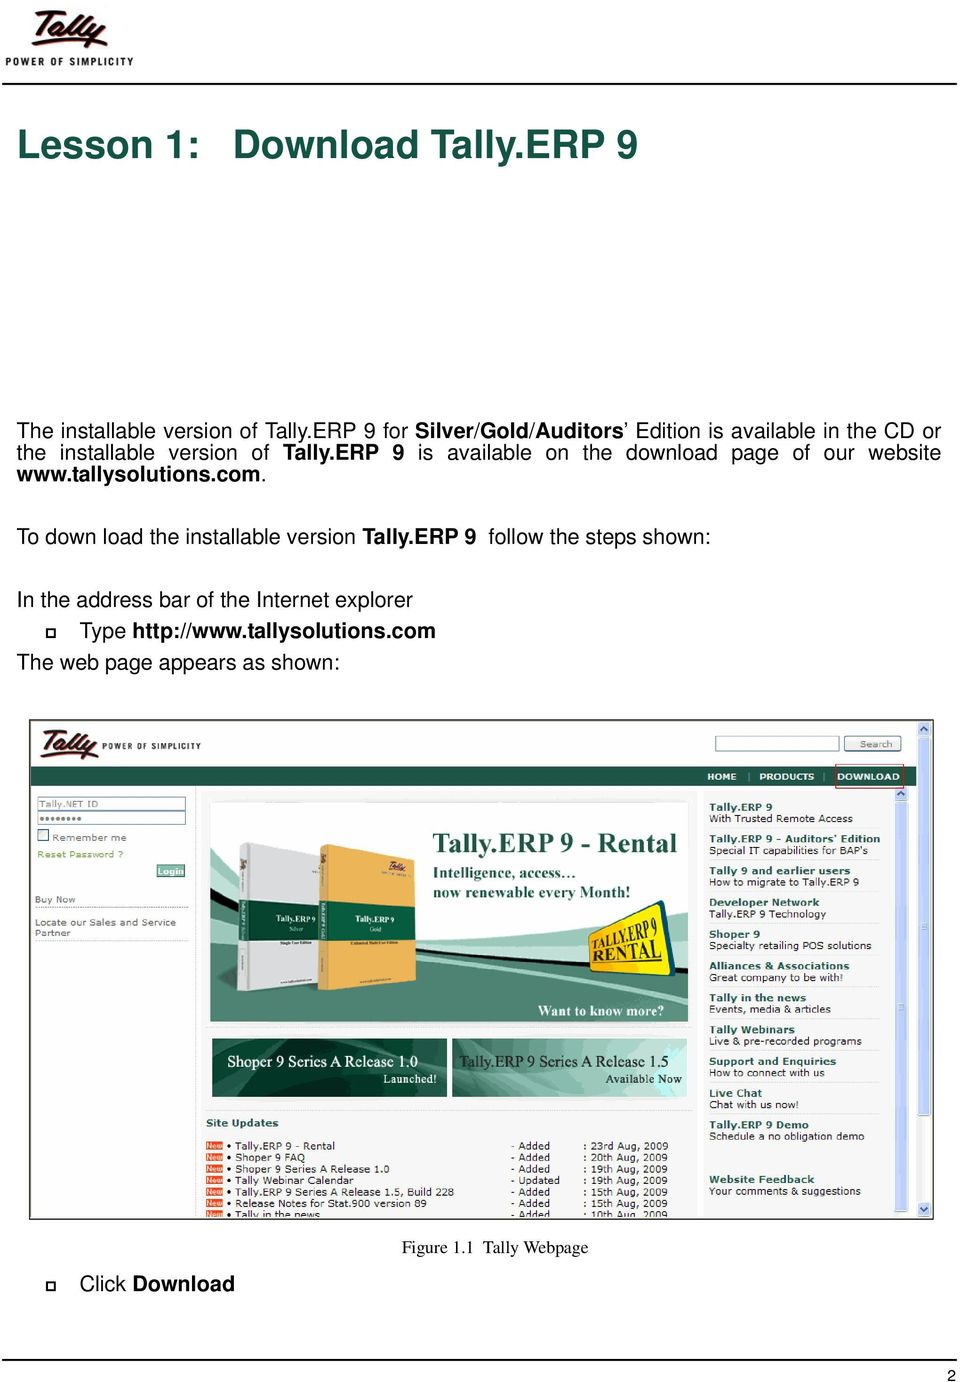 ERP 9 is available on the download page of our website www.tallysolutions.com.